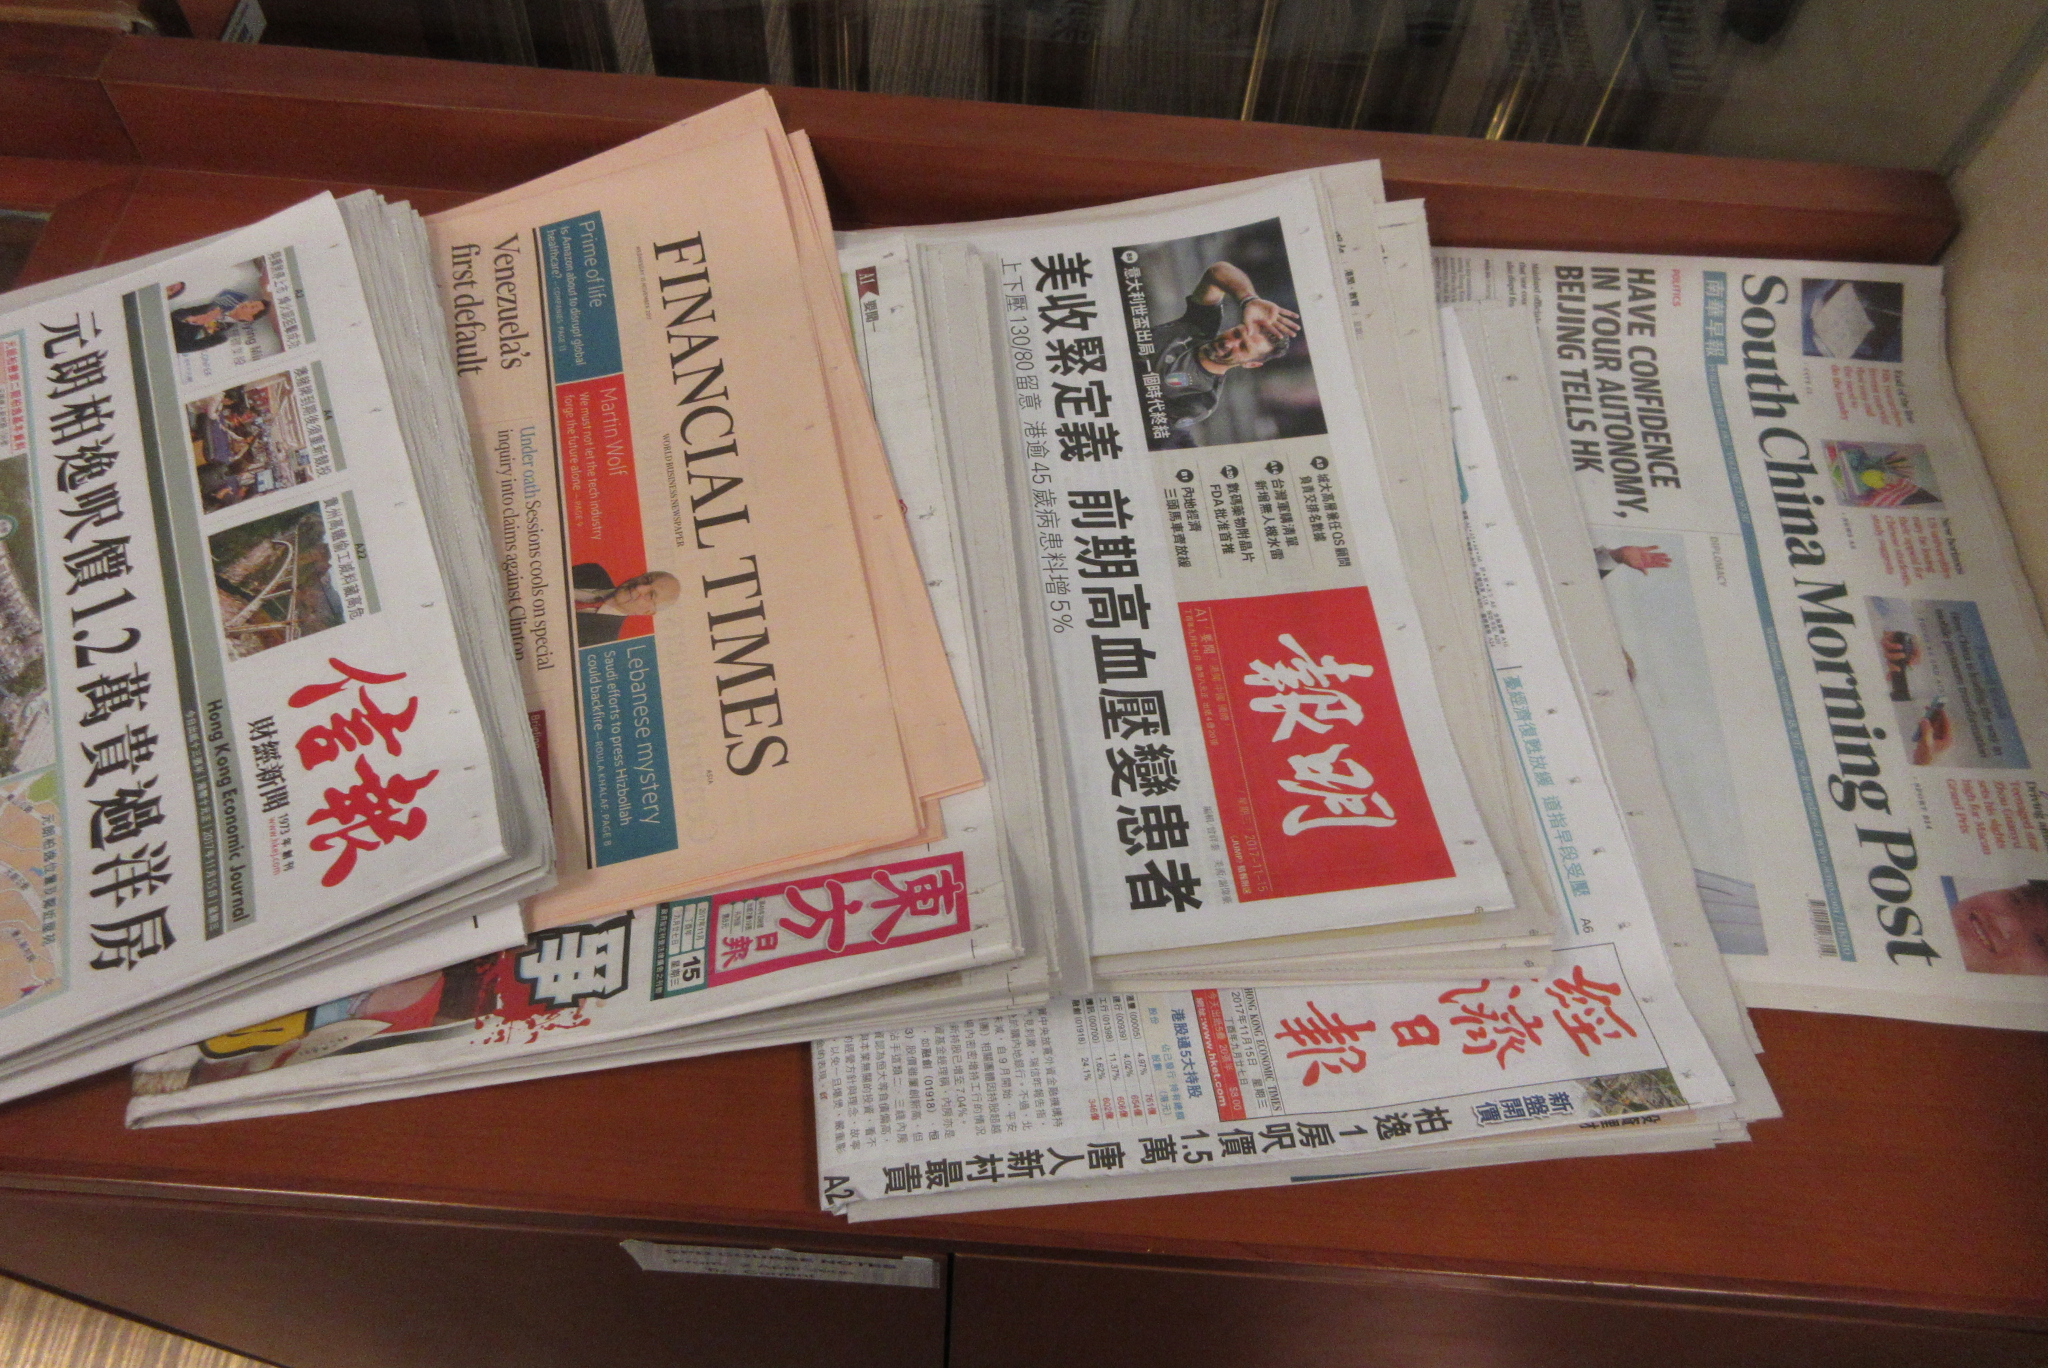 Beijing's influence on journalists